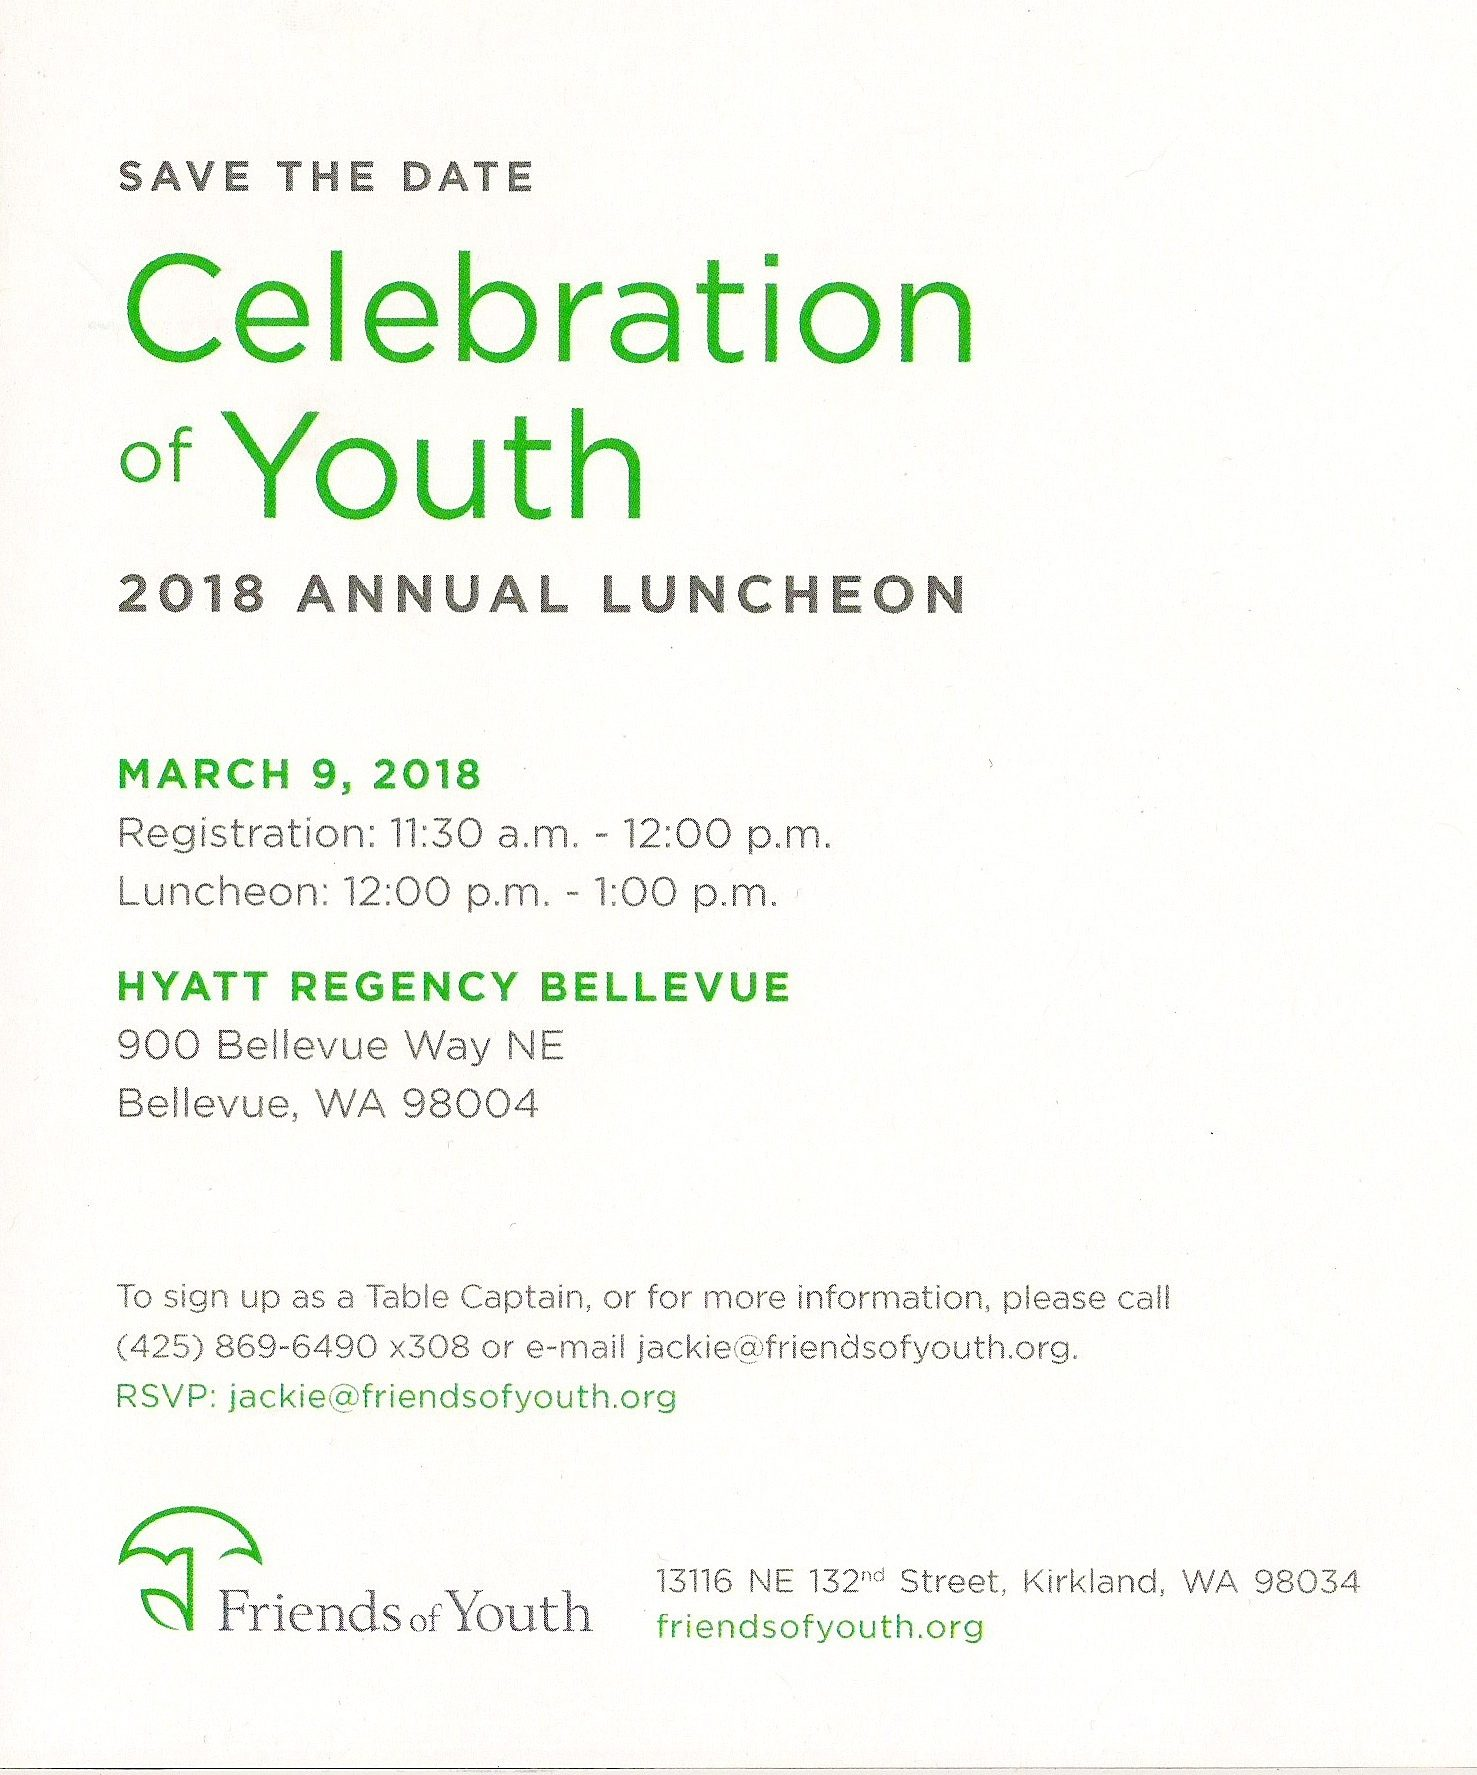 Celebration of Youth 2018 Annual Luncheon